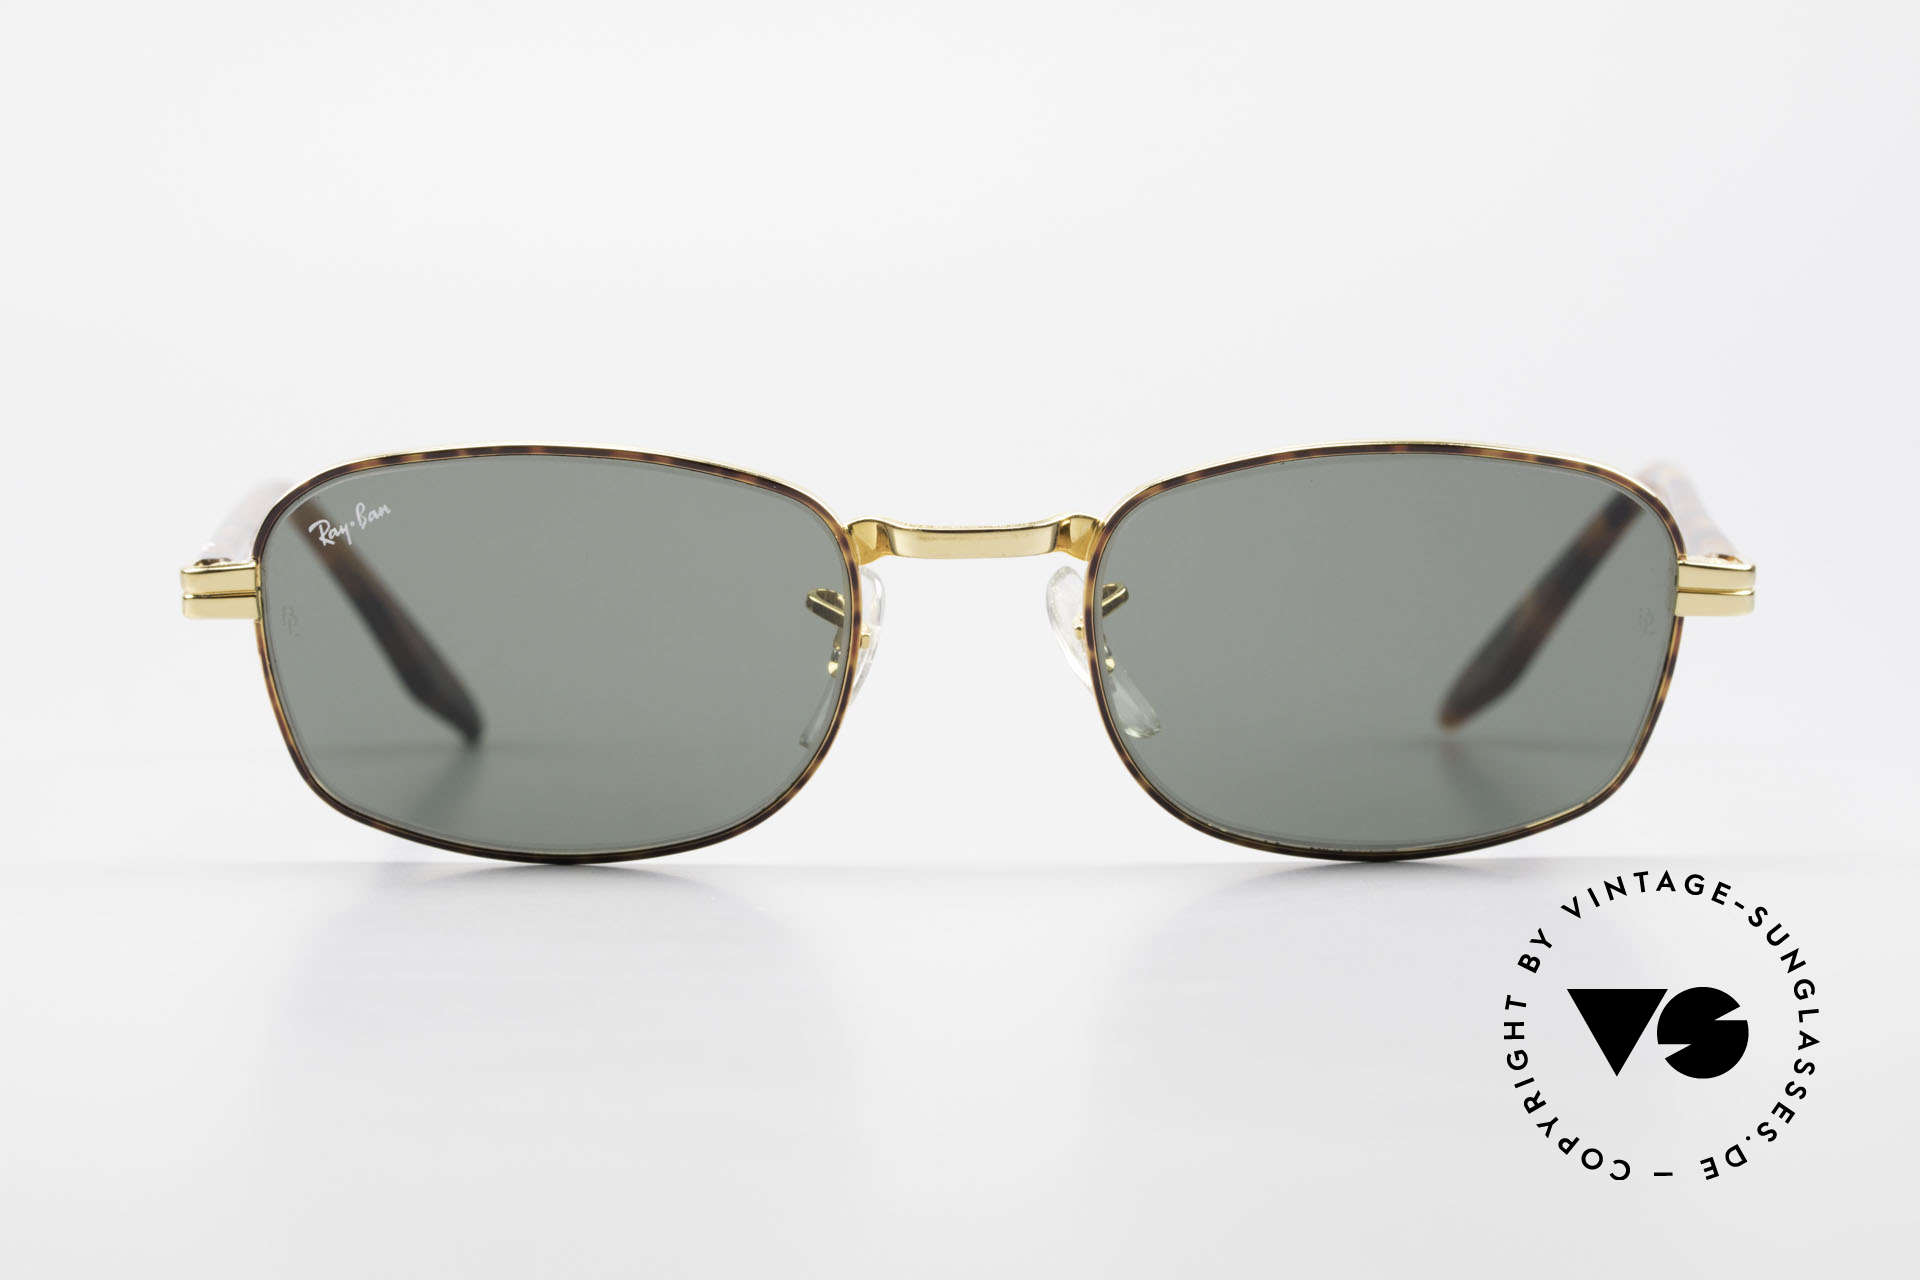 Ray Ban Sidestreet Crosswalk Square USA Ray Ban B&L Shades, one of the last models made by Bausch&Lomb, U.S.A., Made for Men